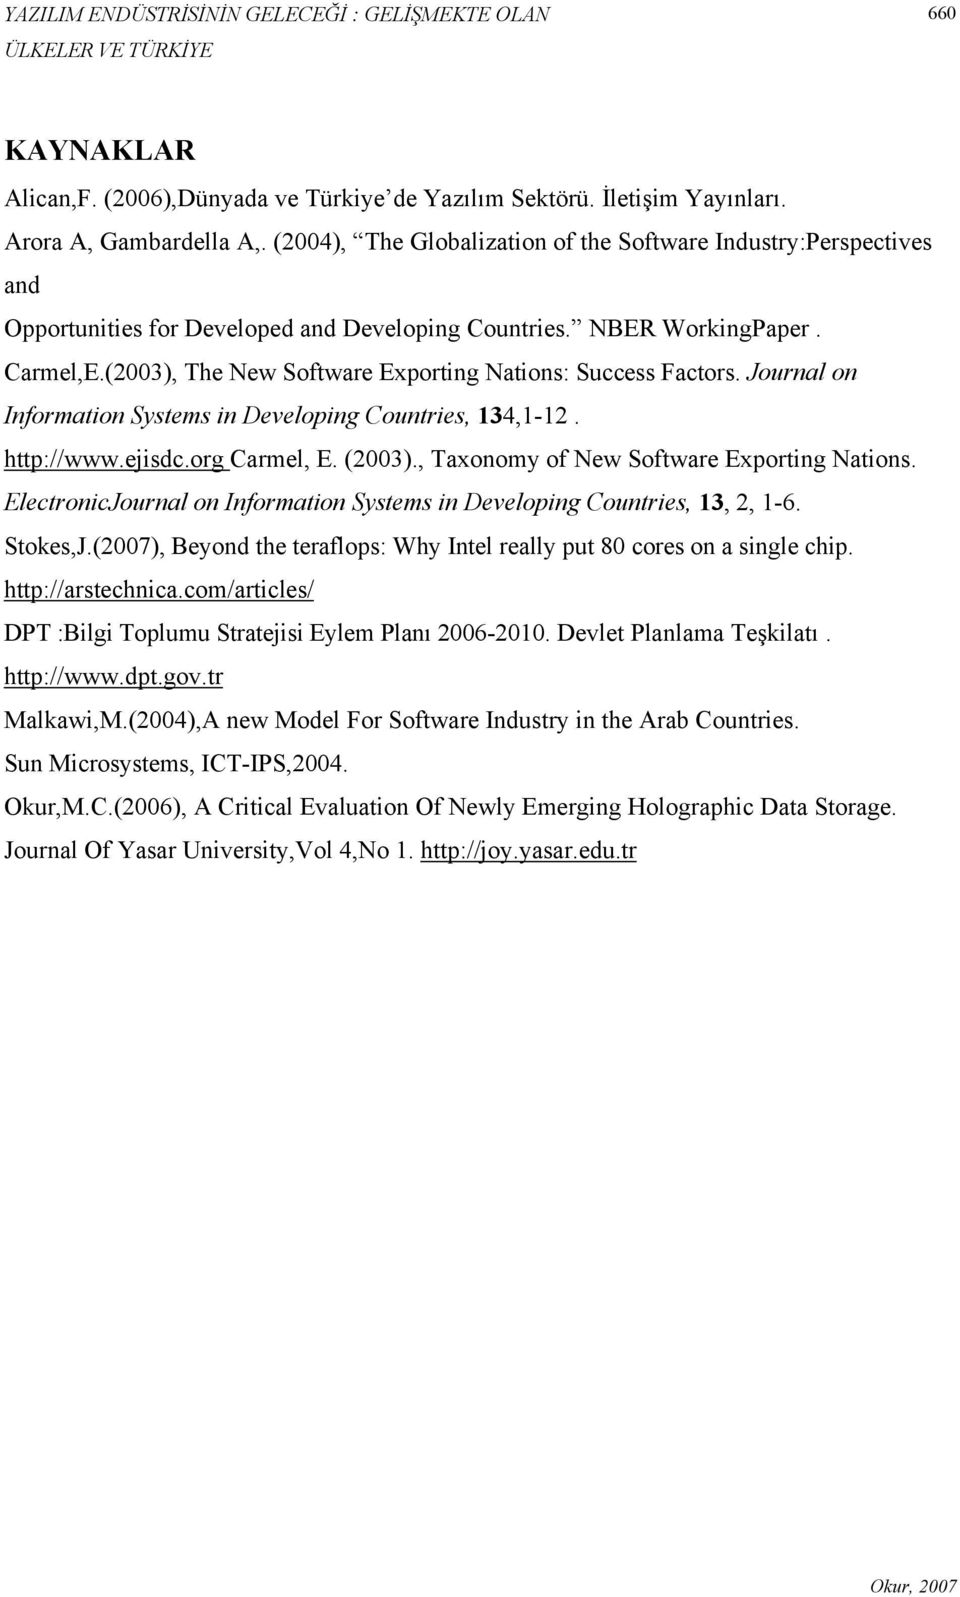 (2003), The New Software Exporting Nations: Success Factors. Journal on Information Systems in Developing Countries, 134,1-12. http://www.ejisdc.org Carmel, E. (2003).